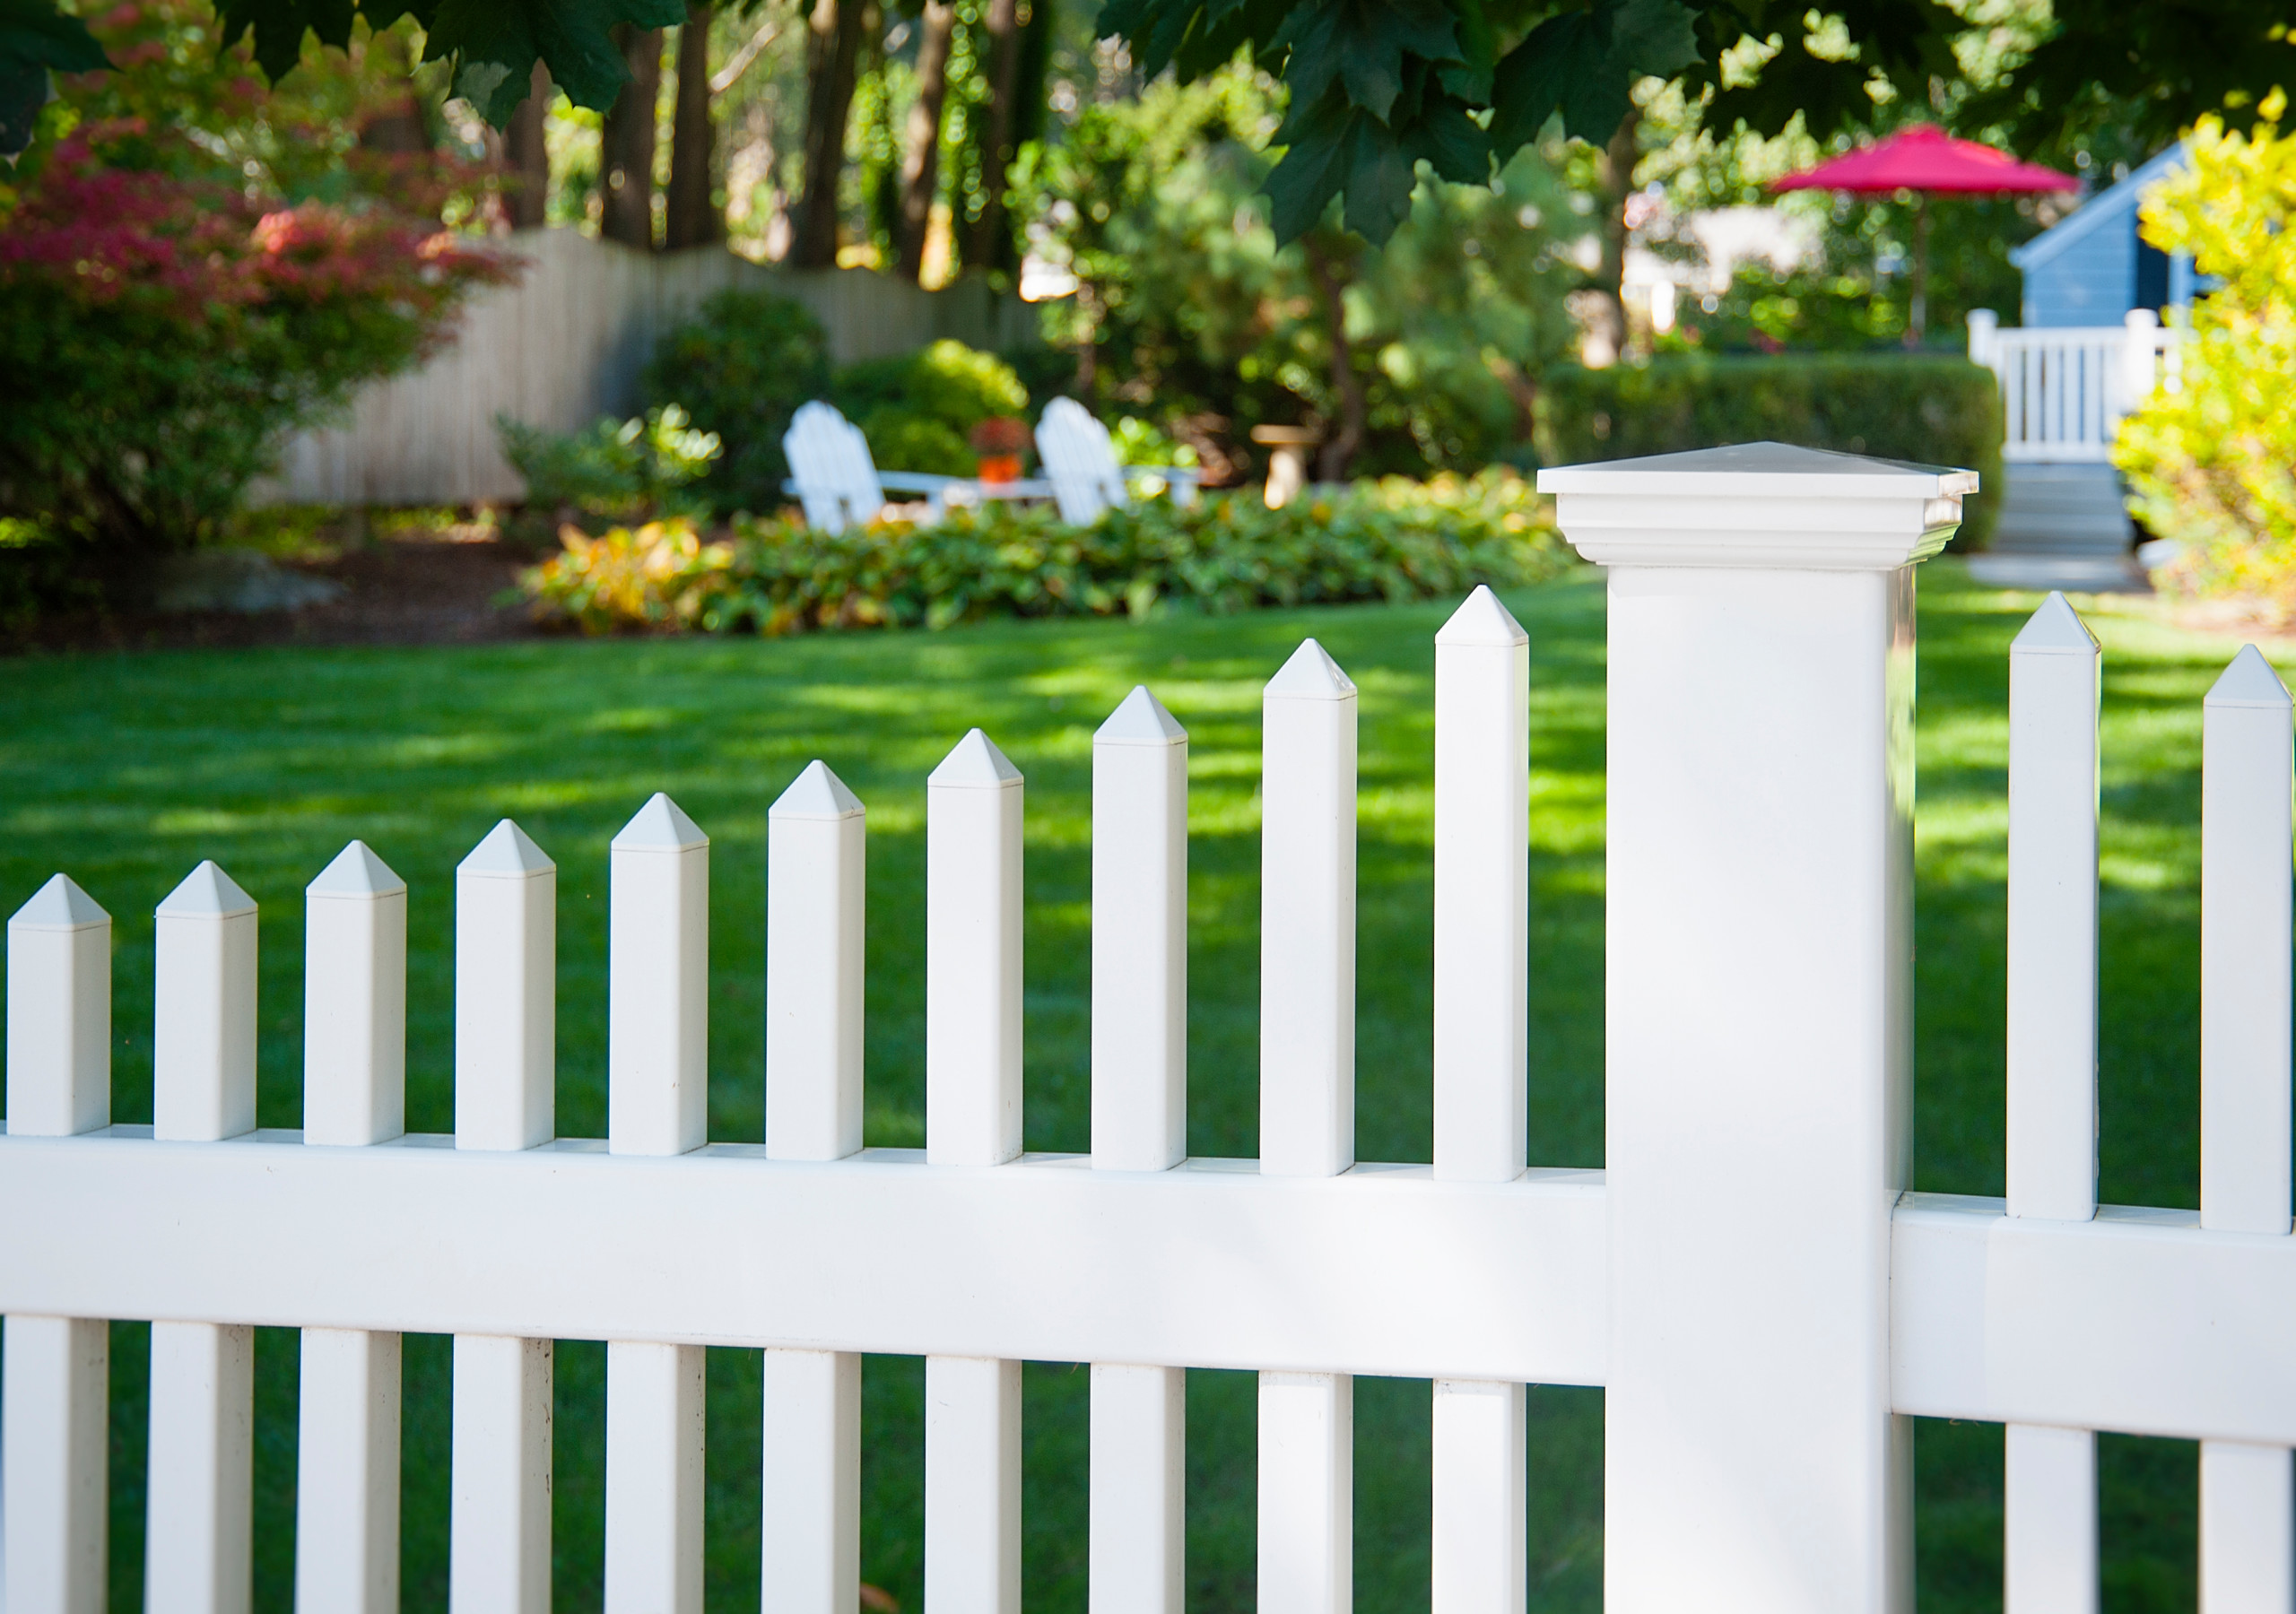 Decorative Outdoor Picket Fence White  from st.hzcdn.com